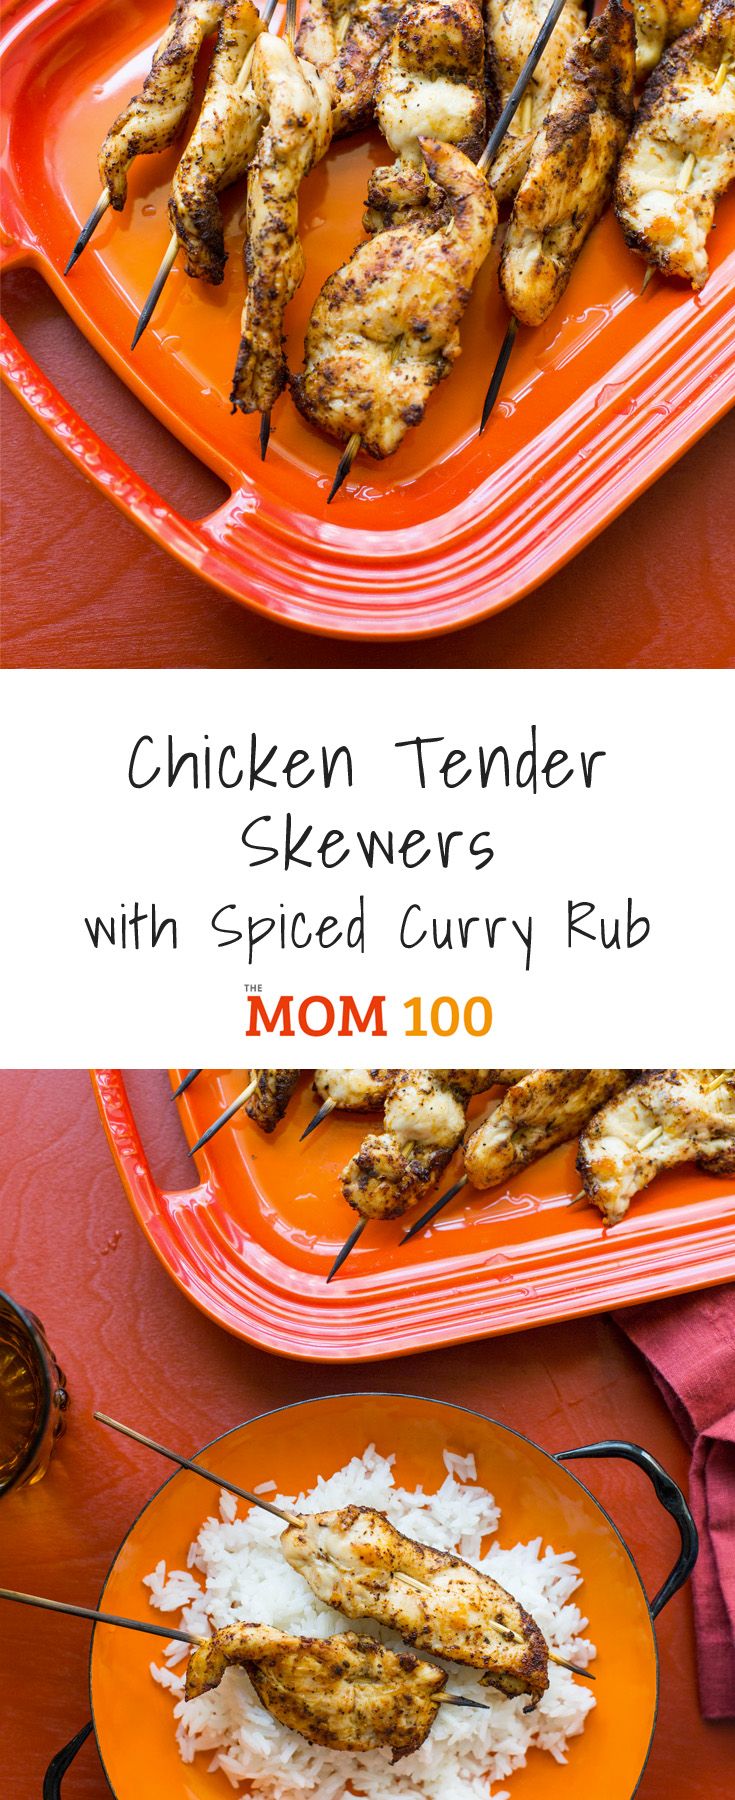 These Chicken Tender Skewers with Spiced Curry Rub have a nicely intense Indian-inspired spice rub coating, and would be lovely served with rice.